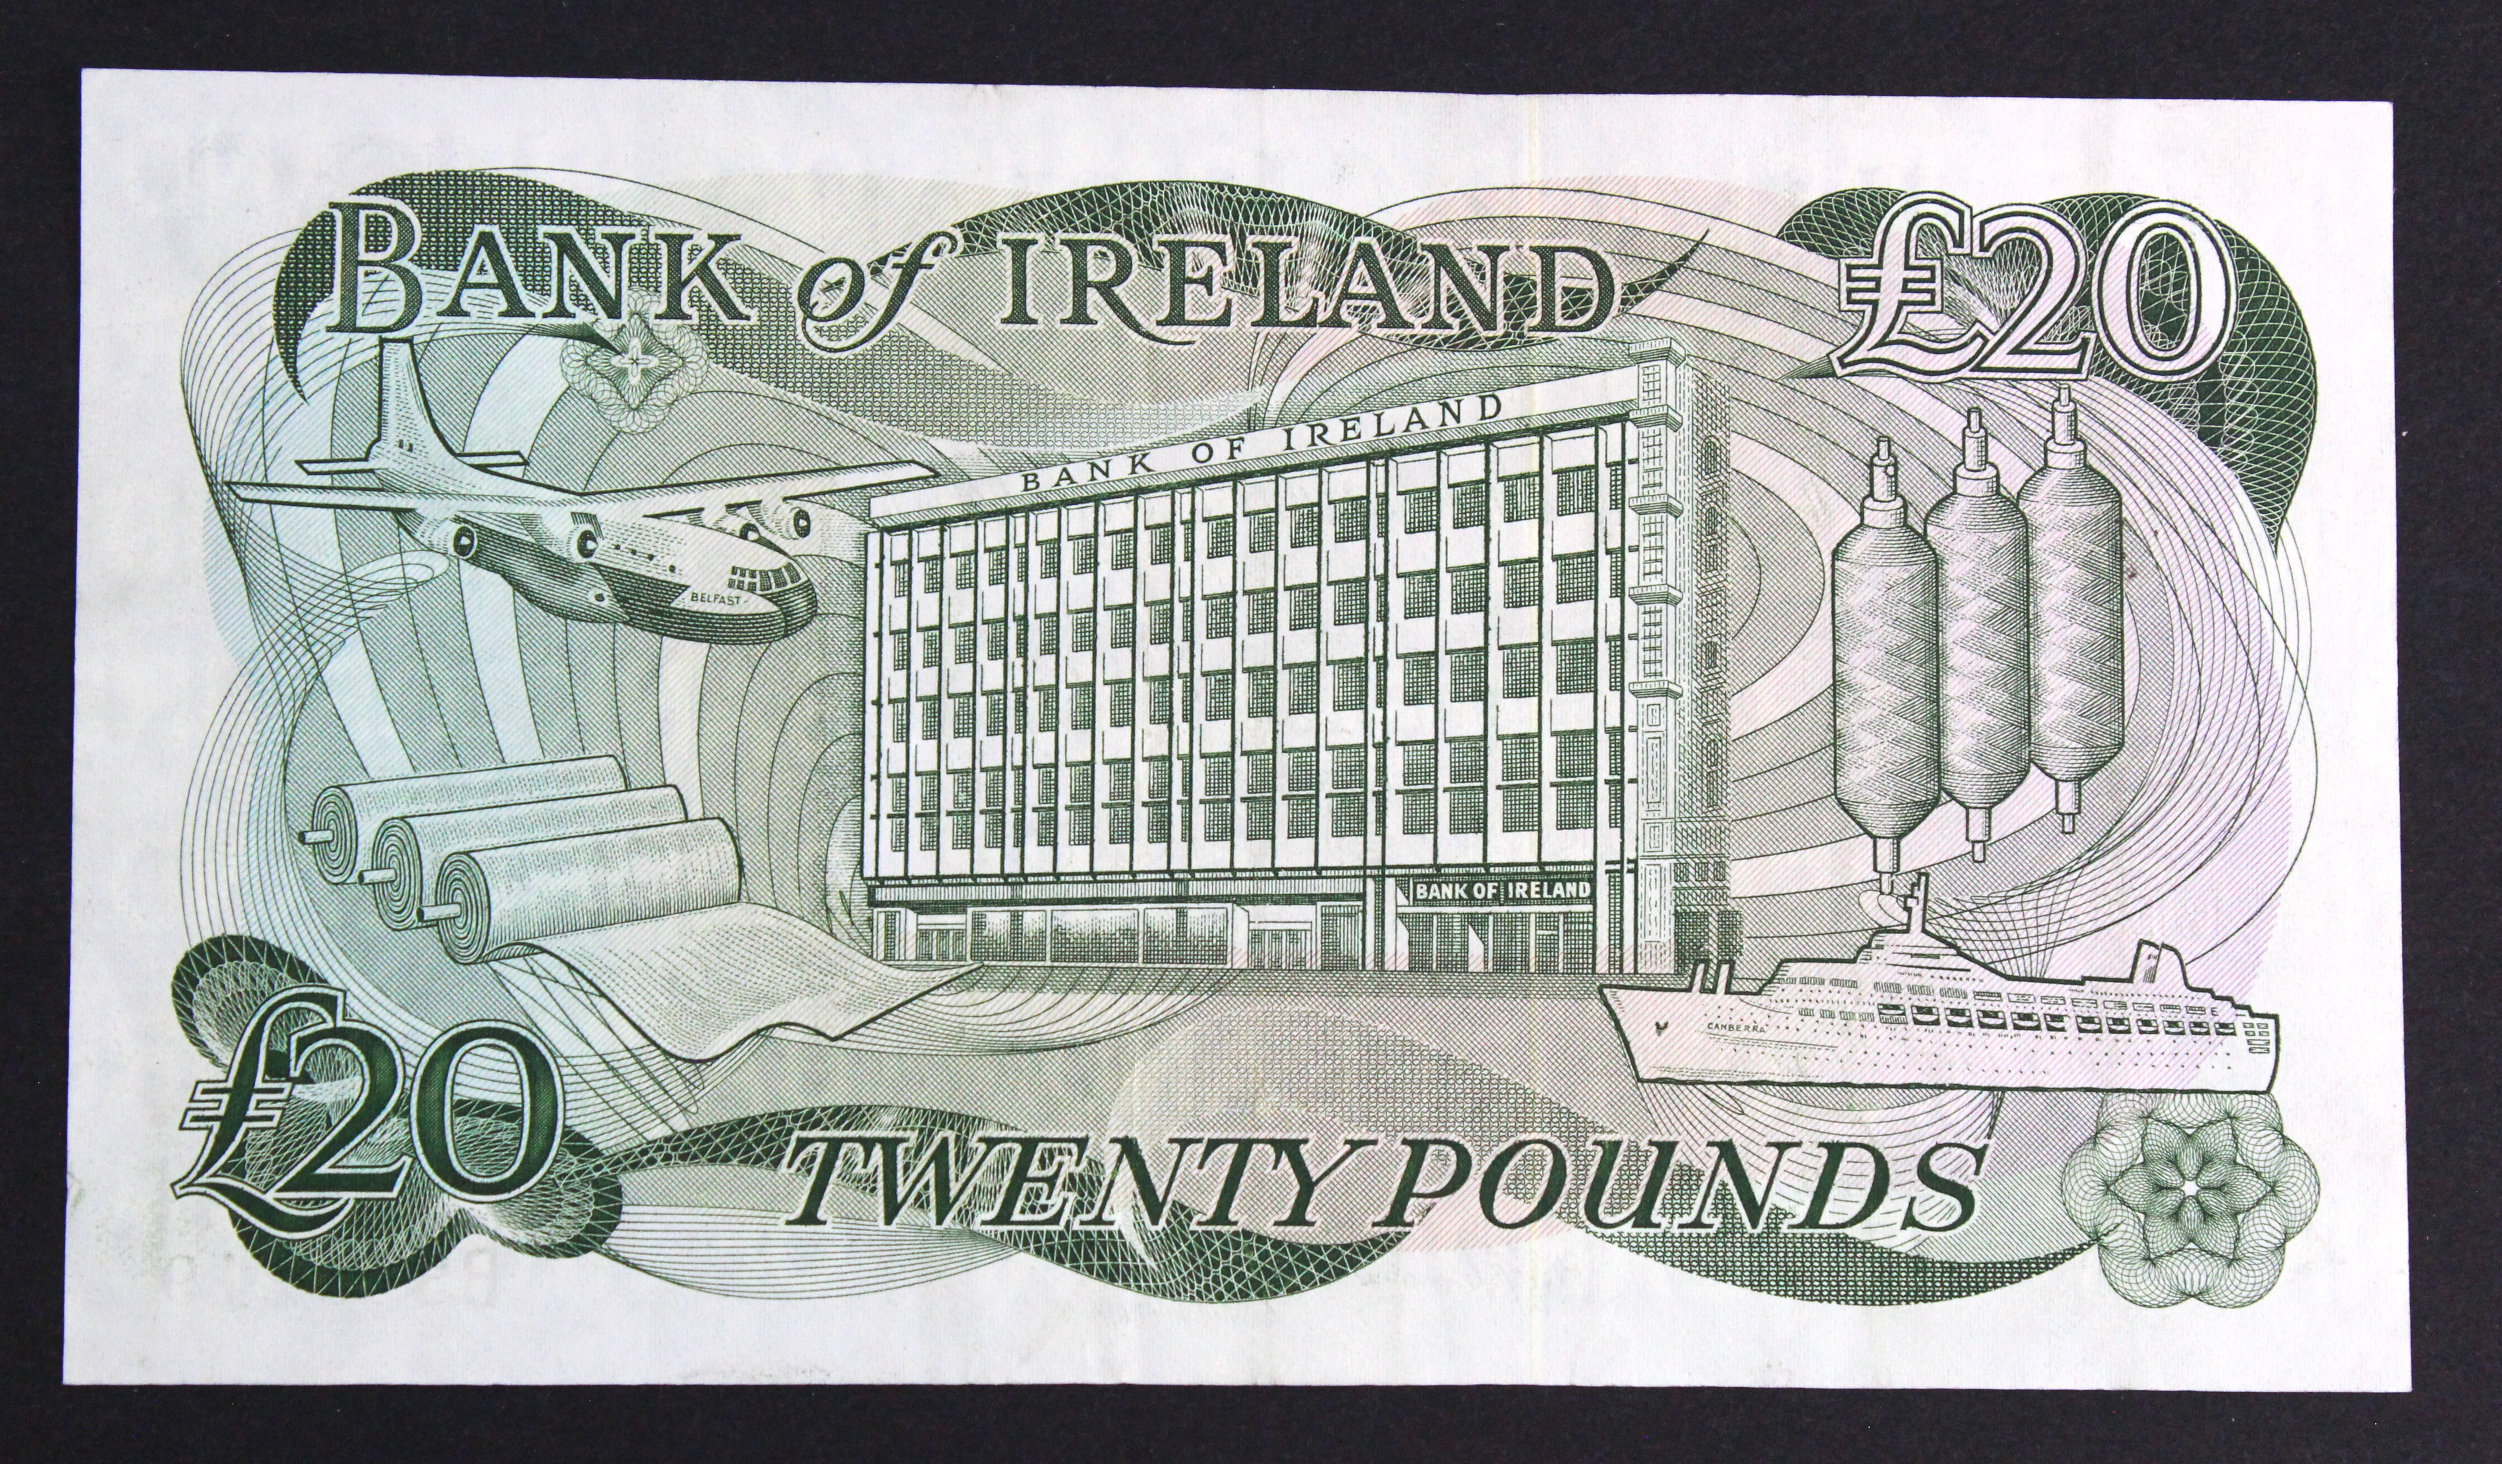 Northern Ireland, Bank of Ireland 20 Pounds issued 1980's (1985), signed D.J. Harrison, serial - Image 2 of 2